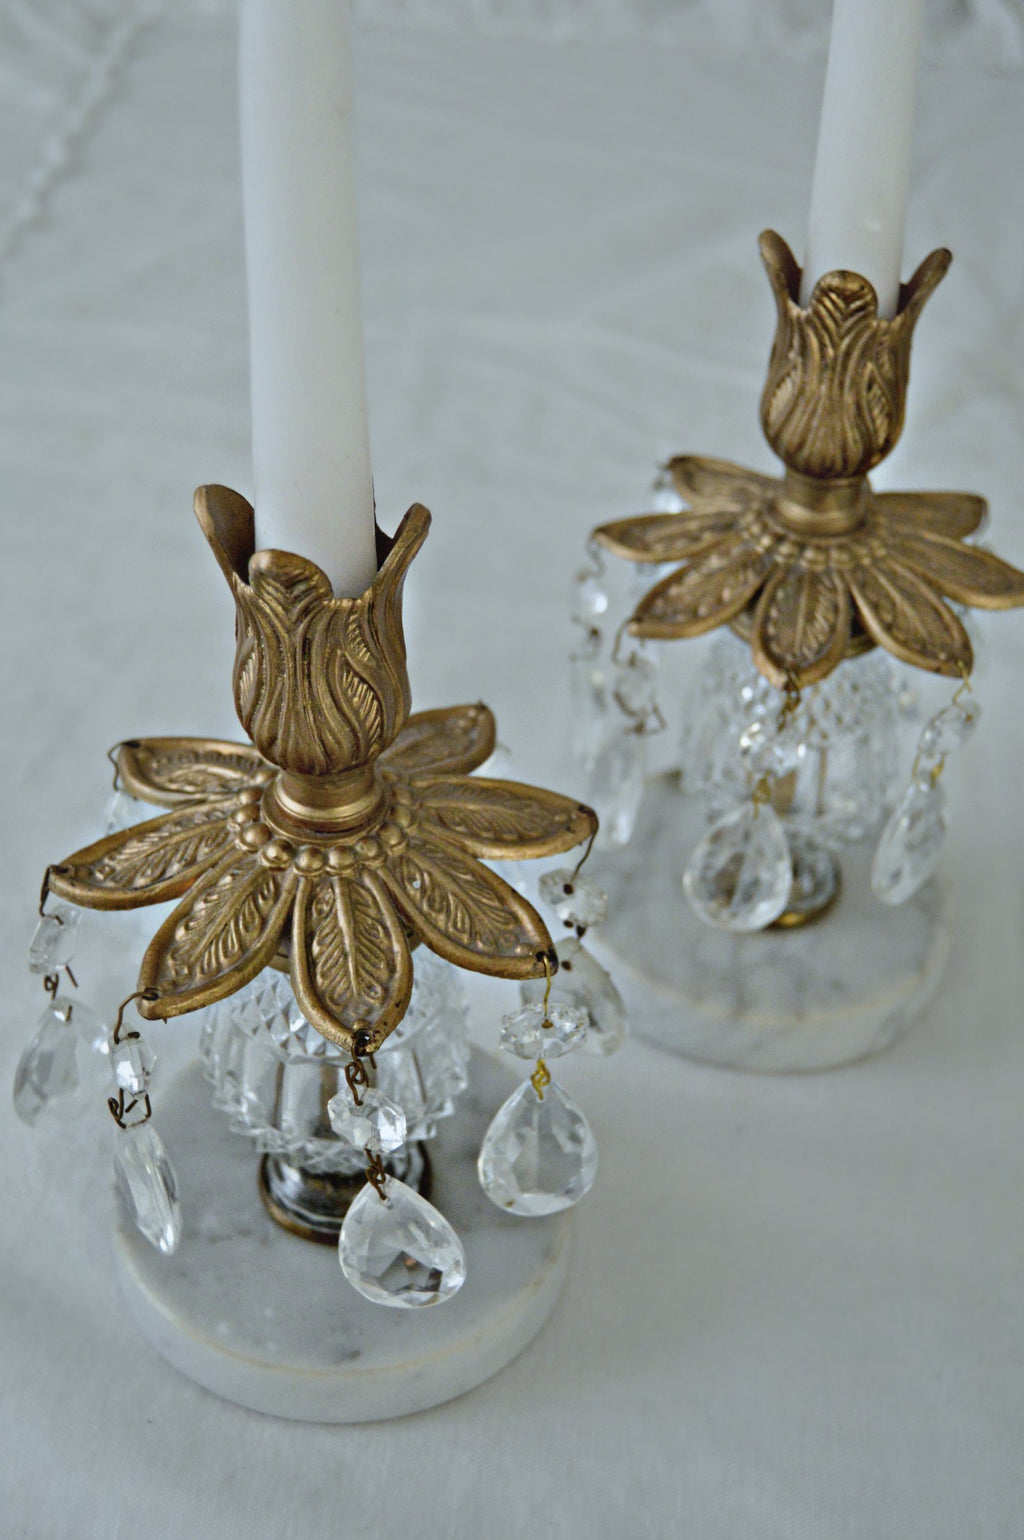 Italian bronze and marble candlestick holders with crystal pendants